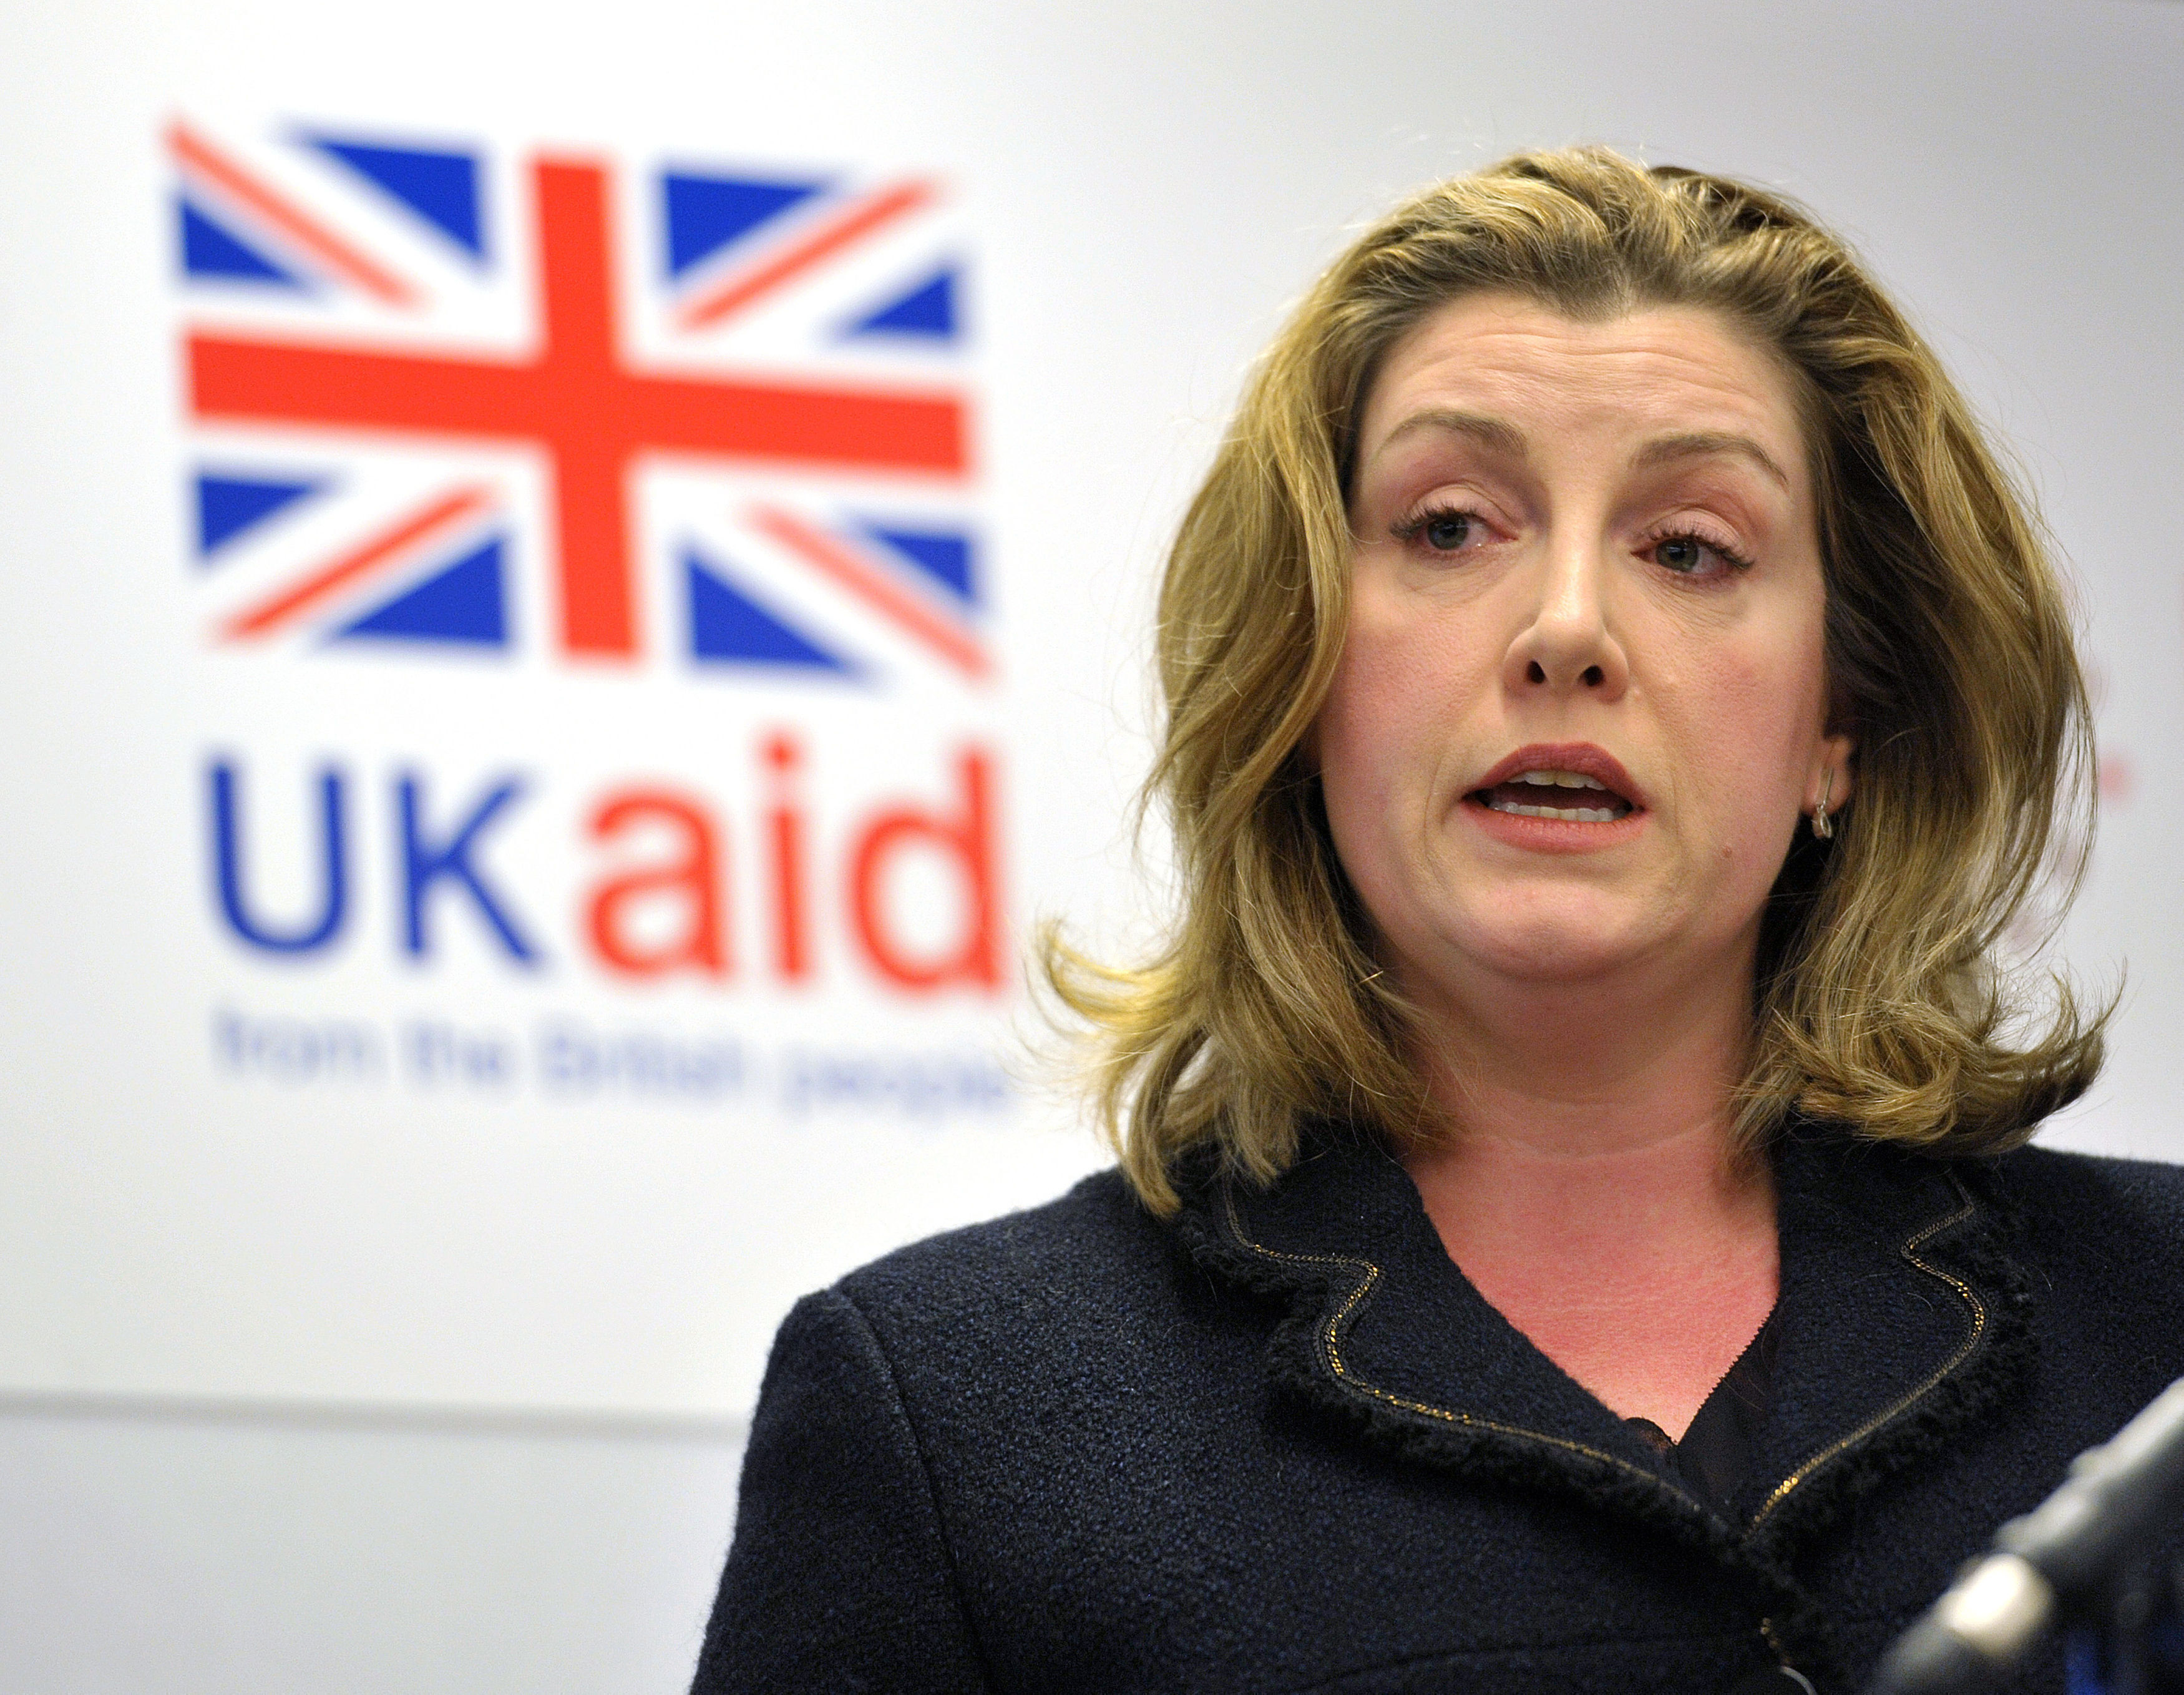 International Development Secretary Penny Mordaunt met with Oxfam bosses to discuss the relationship between the charity and the Government